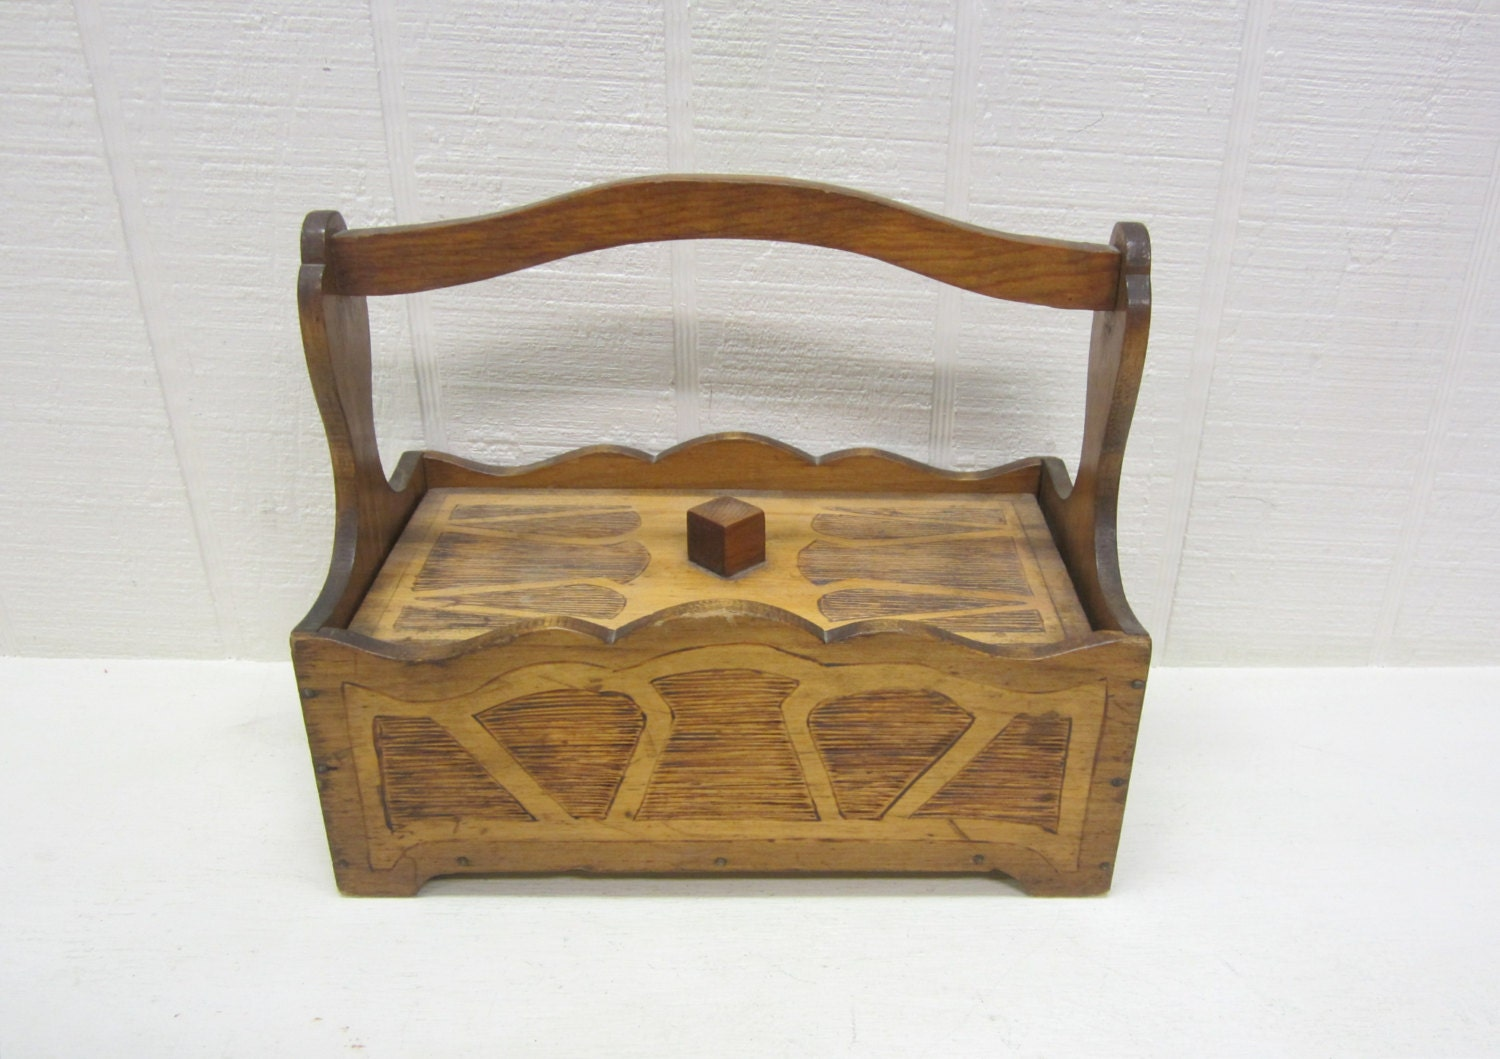 Handmade Sewing Basket : Vintage wooden sewing basket box handmade by thejunkman